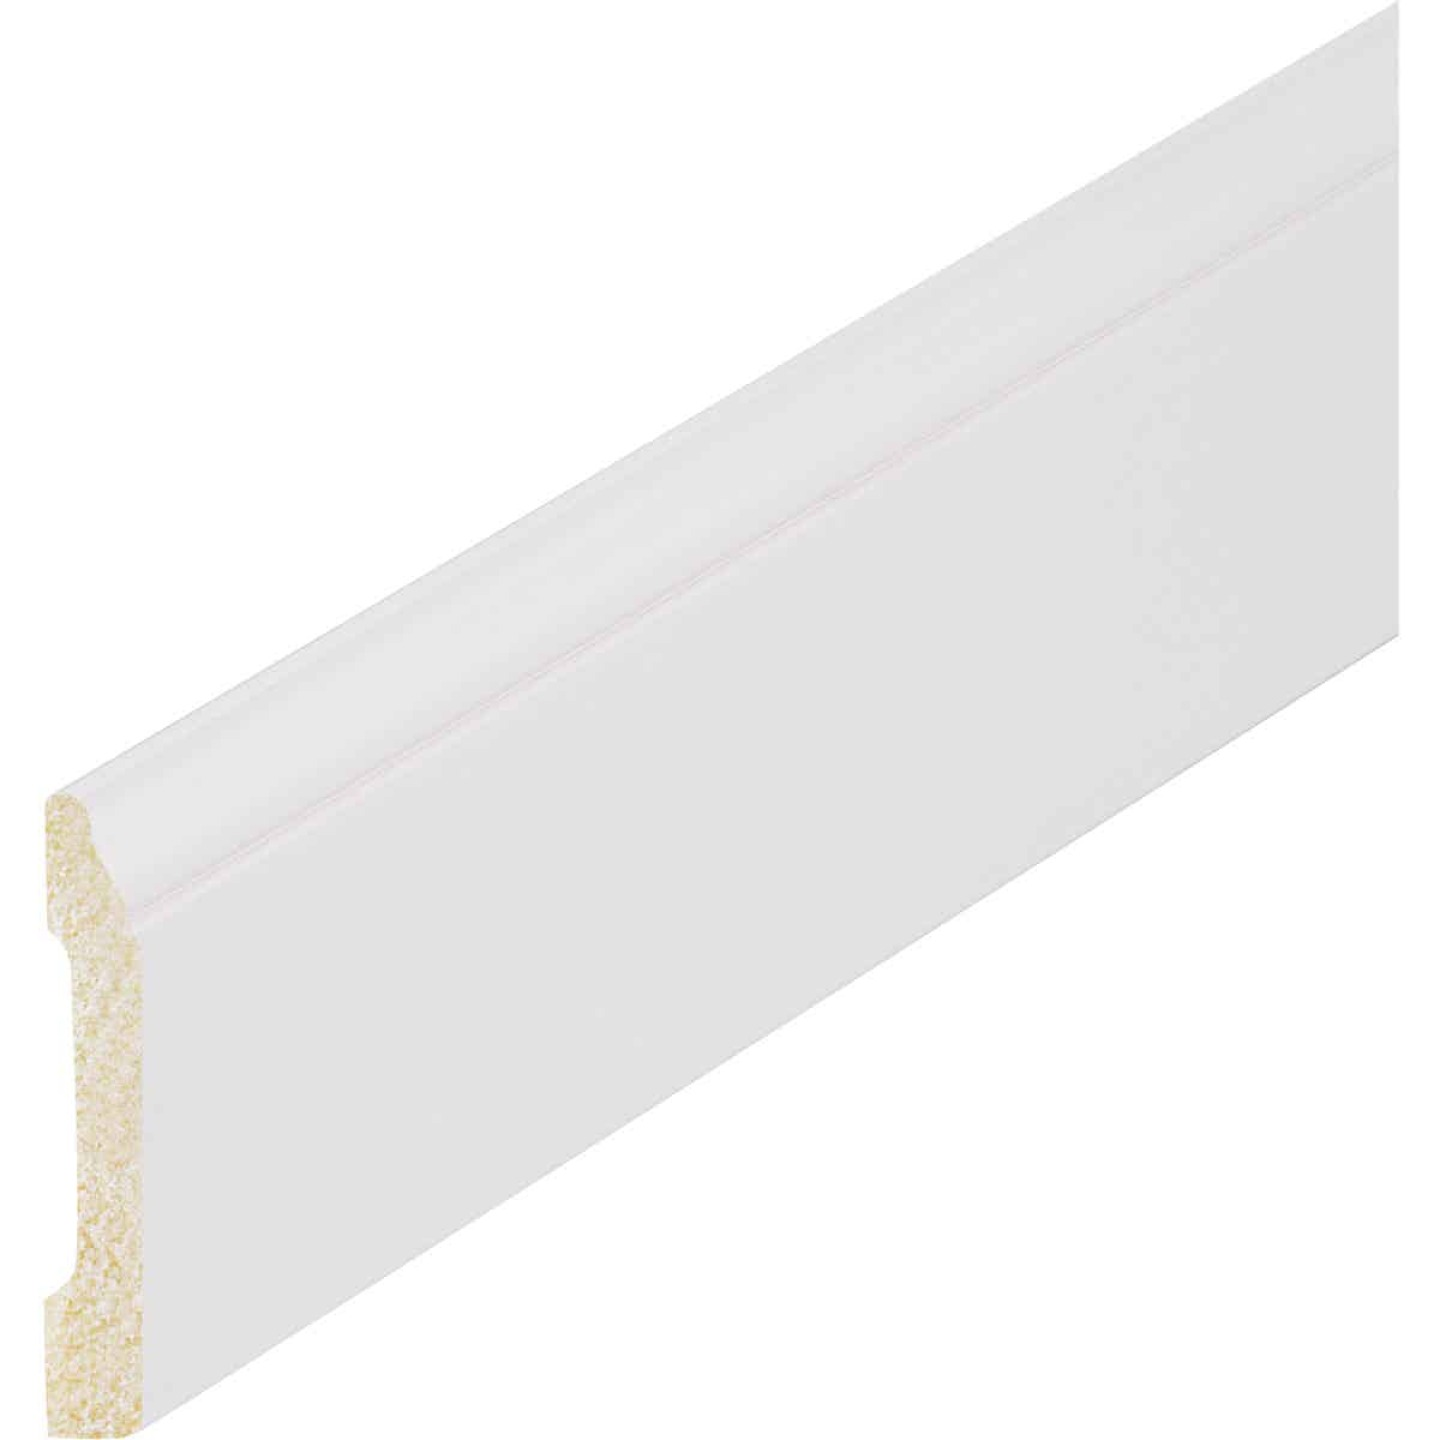 Inteplast Building Products 3/8 In. W. x 3-3/16 In. H. x 8 Ft. L. Crystal White Polystyrene Colonial Base Molding Image 2